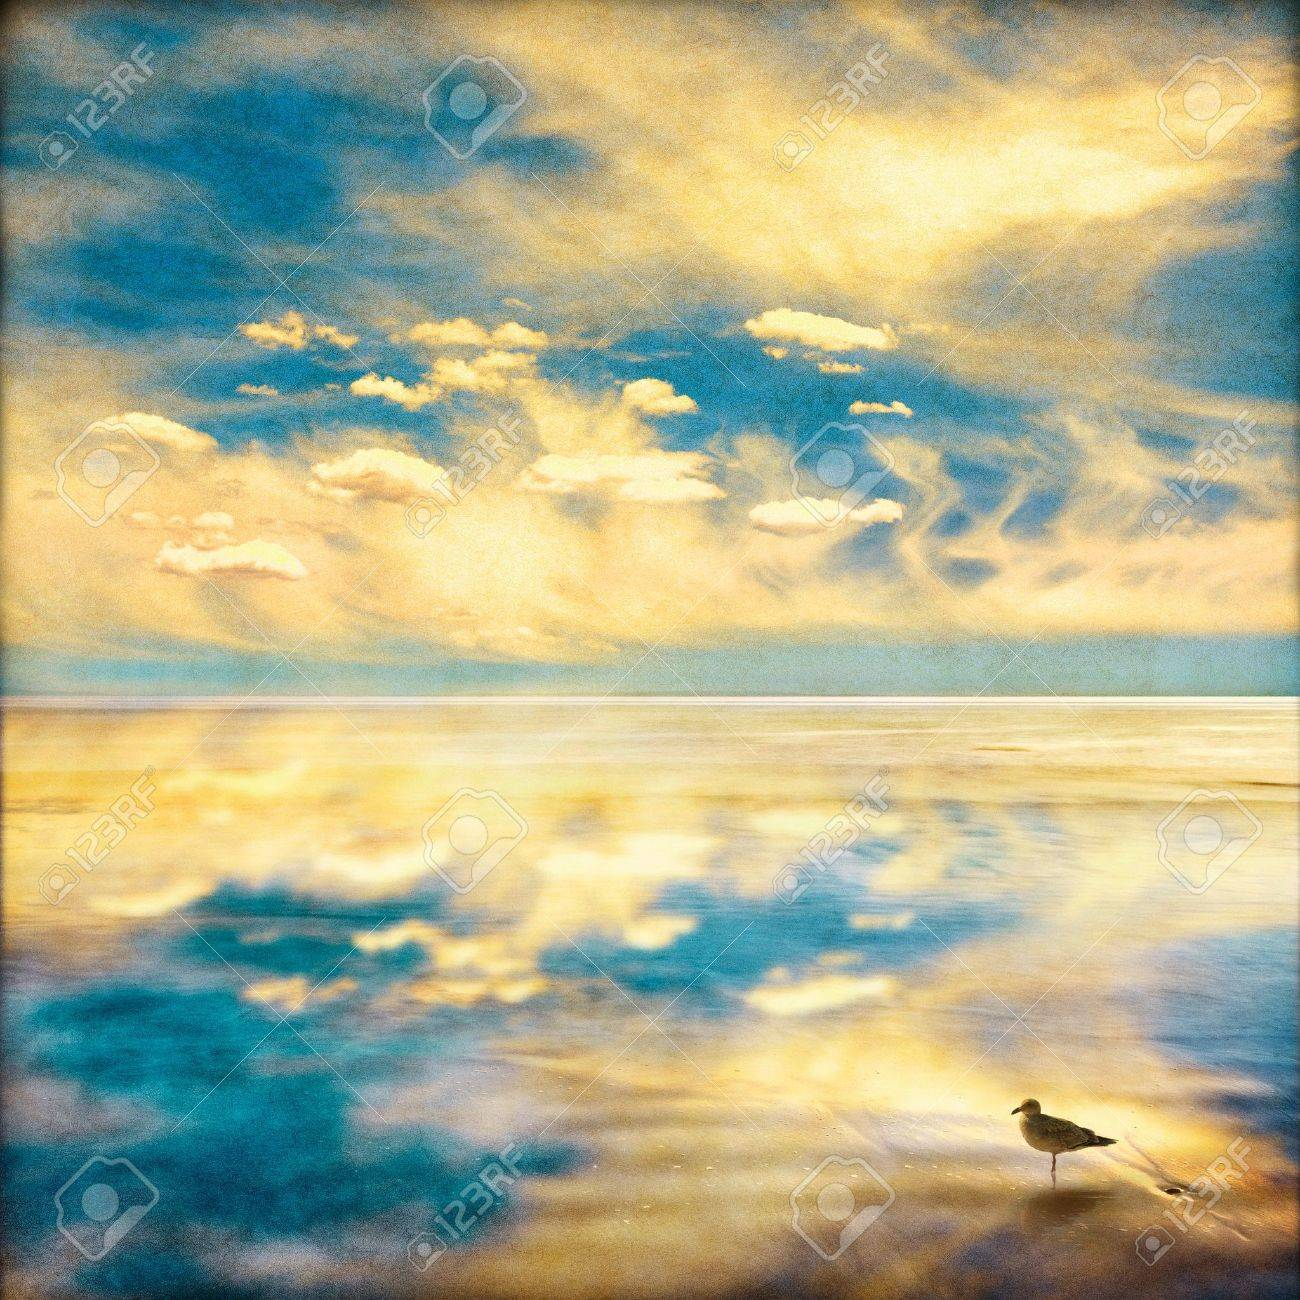 A fantasy sky and clouds seascape with a dreamy vintage look.  Image displays a pleasing paper grain and fiber texture at 100%. Stock Photo - 10032604